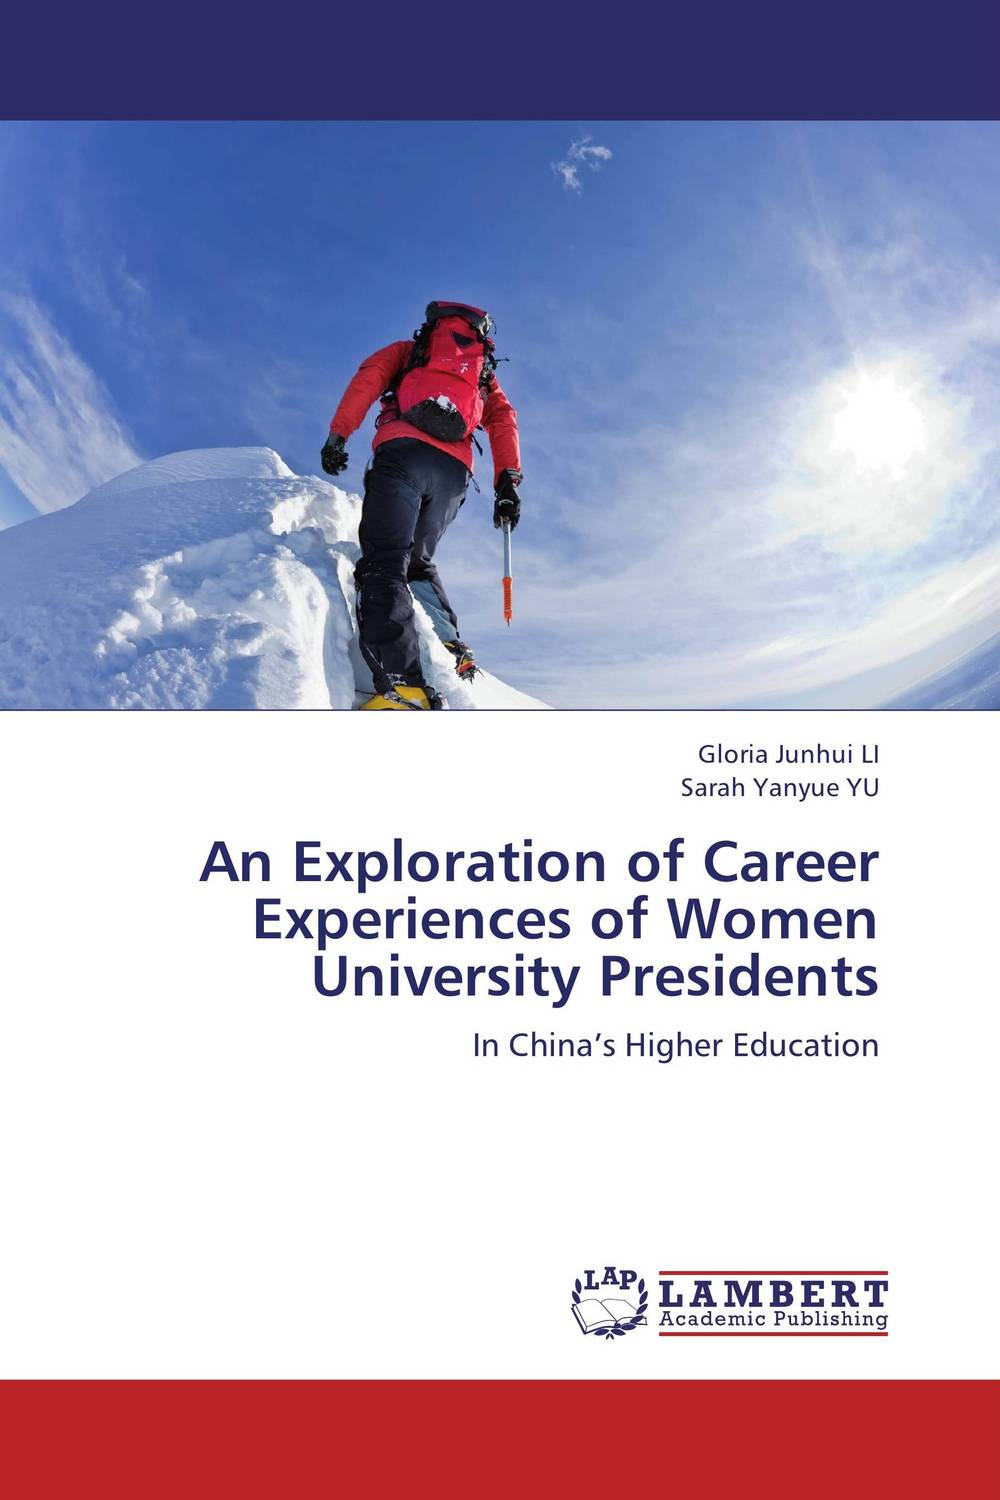 An Exploration of Career Experiences of Women University Presidents